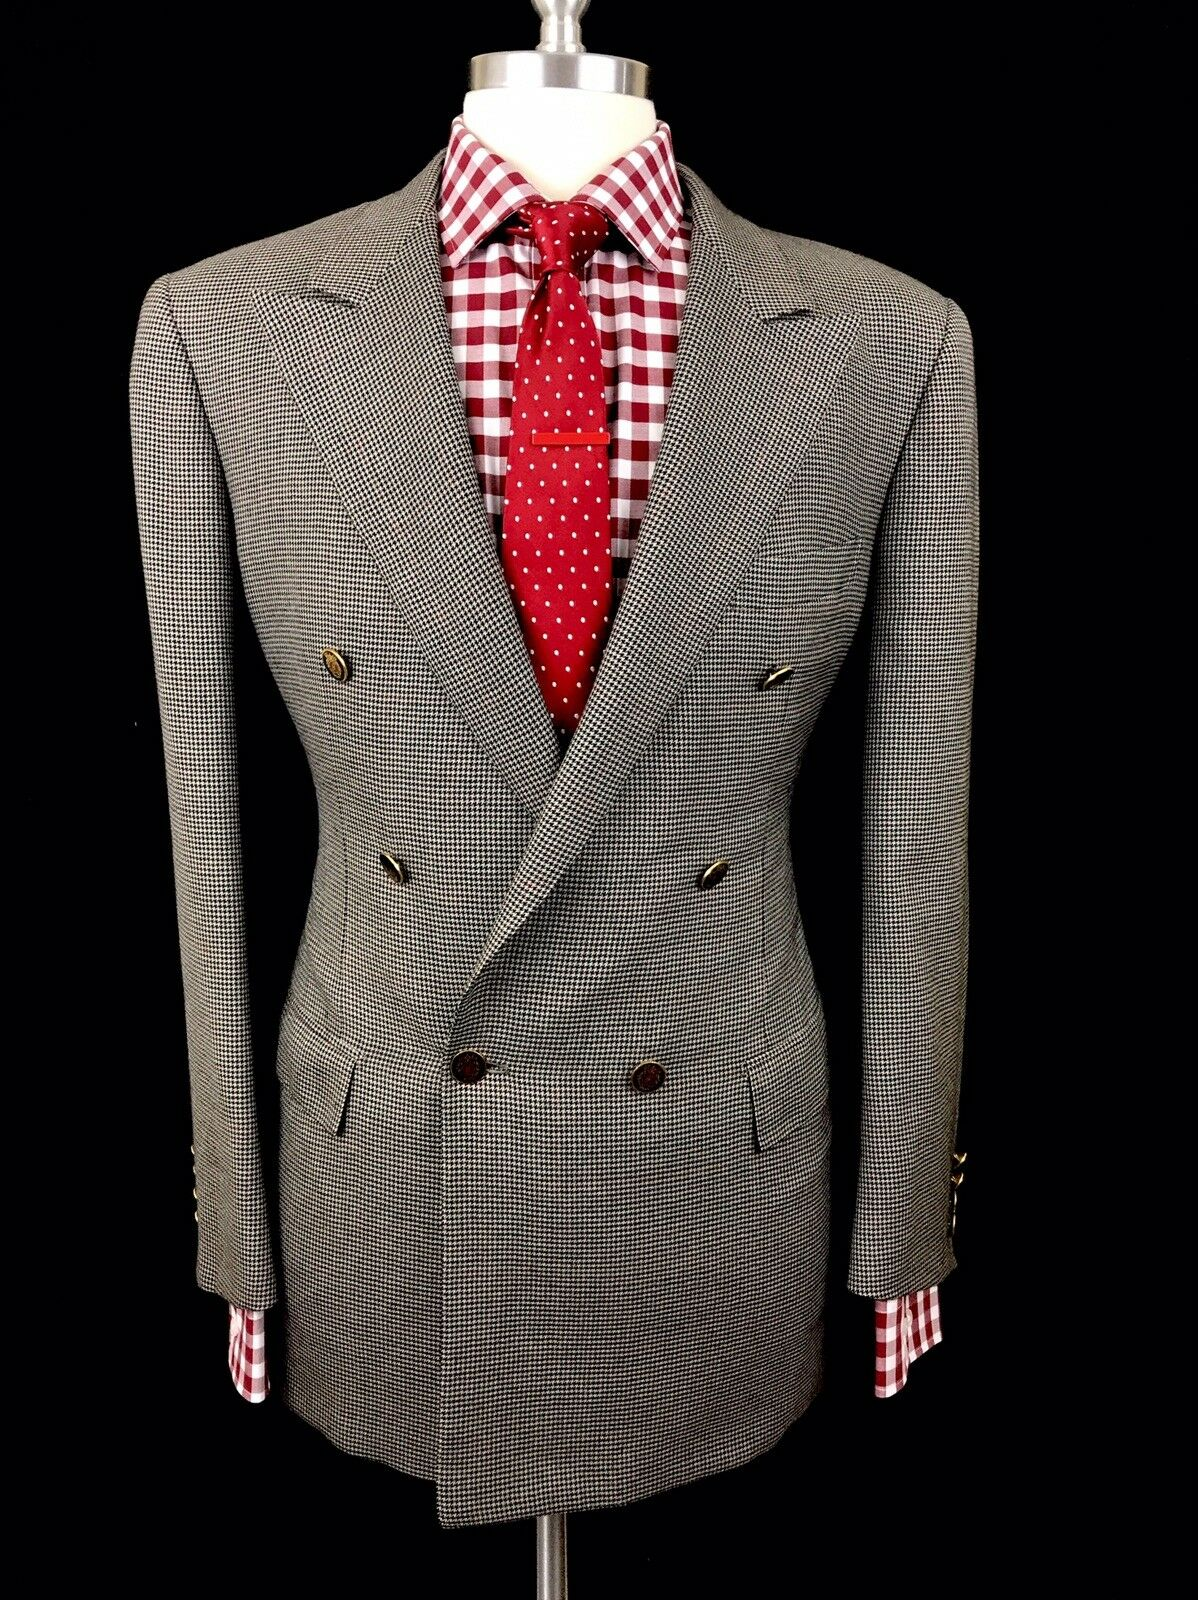 BRIONI GREY HOUNDSTOOTH DOUBLE BREASTED PURE CASHMERE EMBLEM METAL BUTTONS 42R